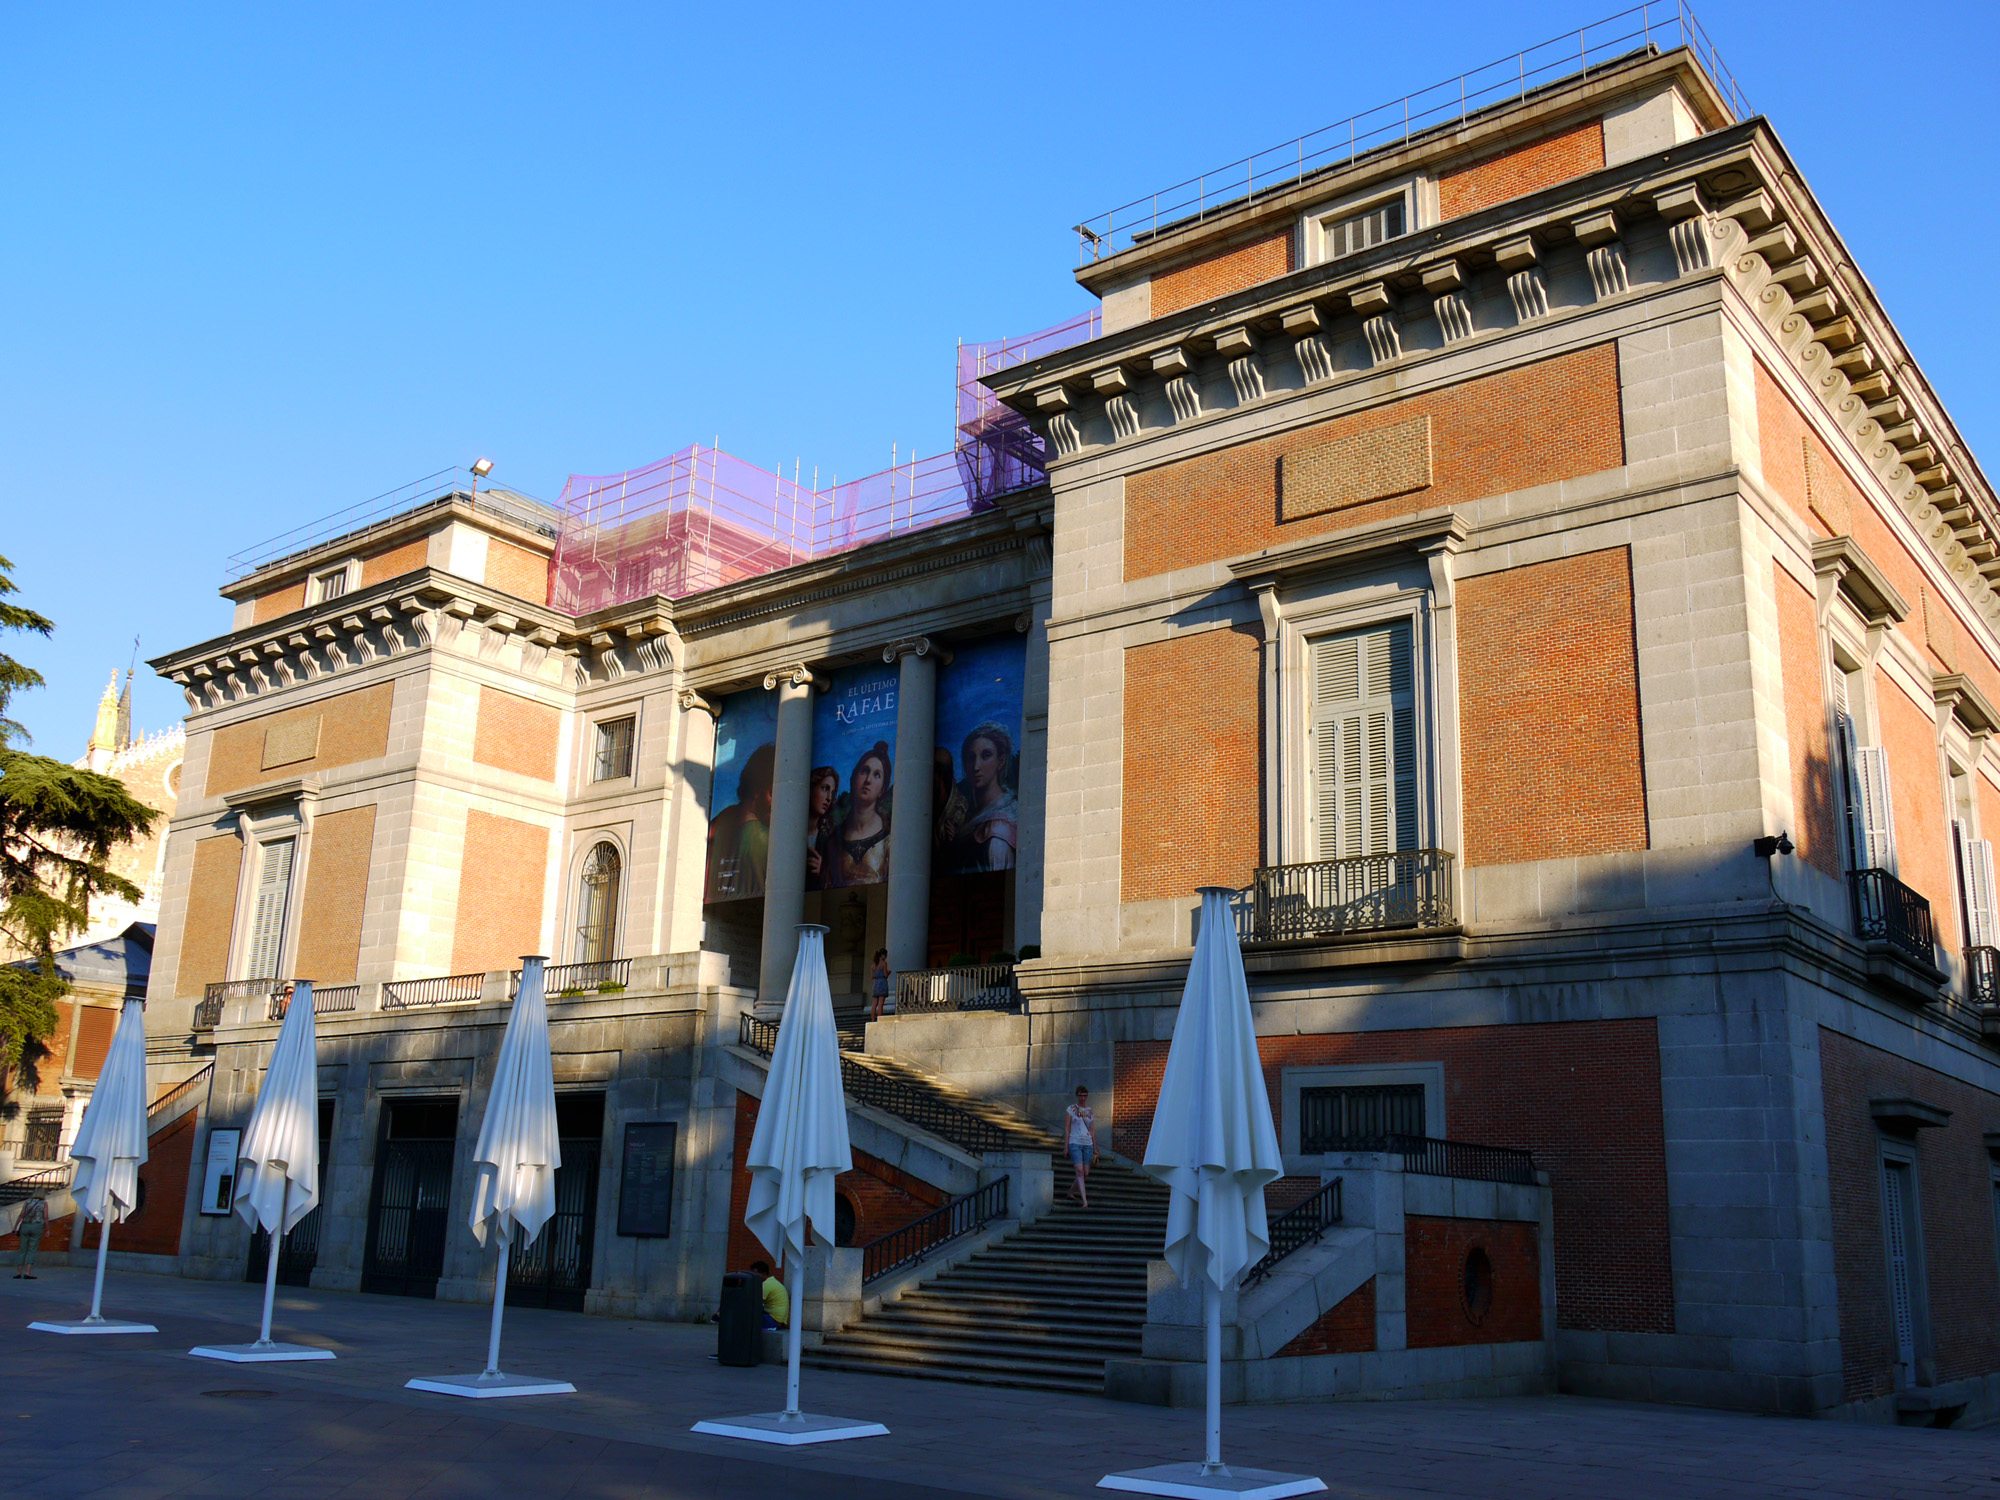 Infocus museo nacional del prado madrid spain hitch for Calle del prado 9 madrid espana